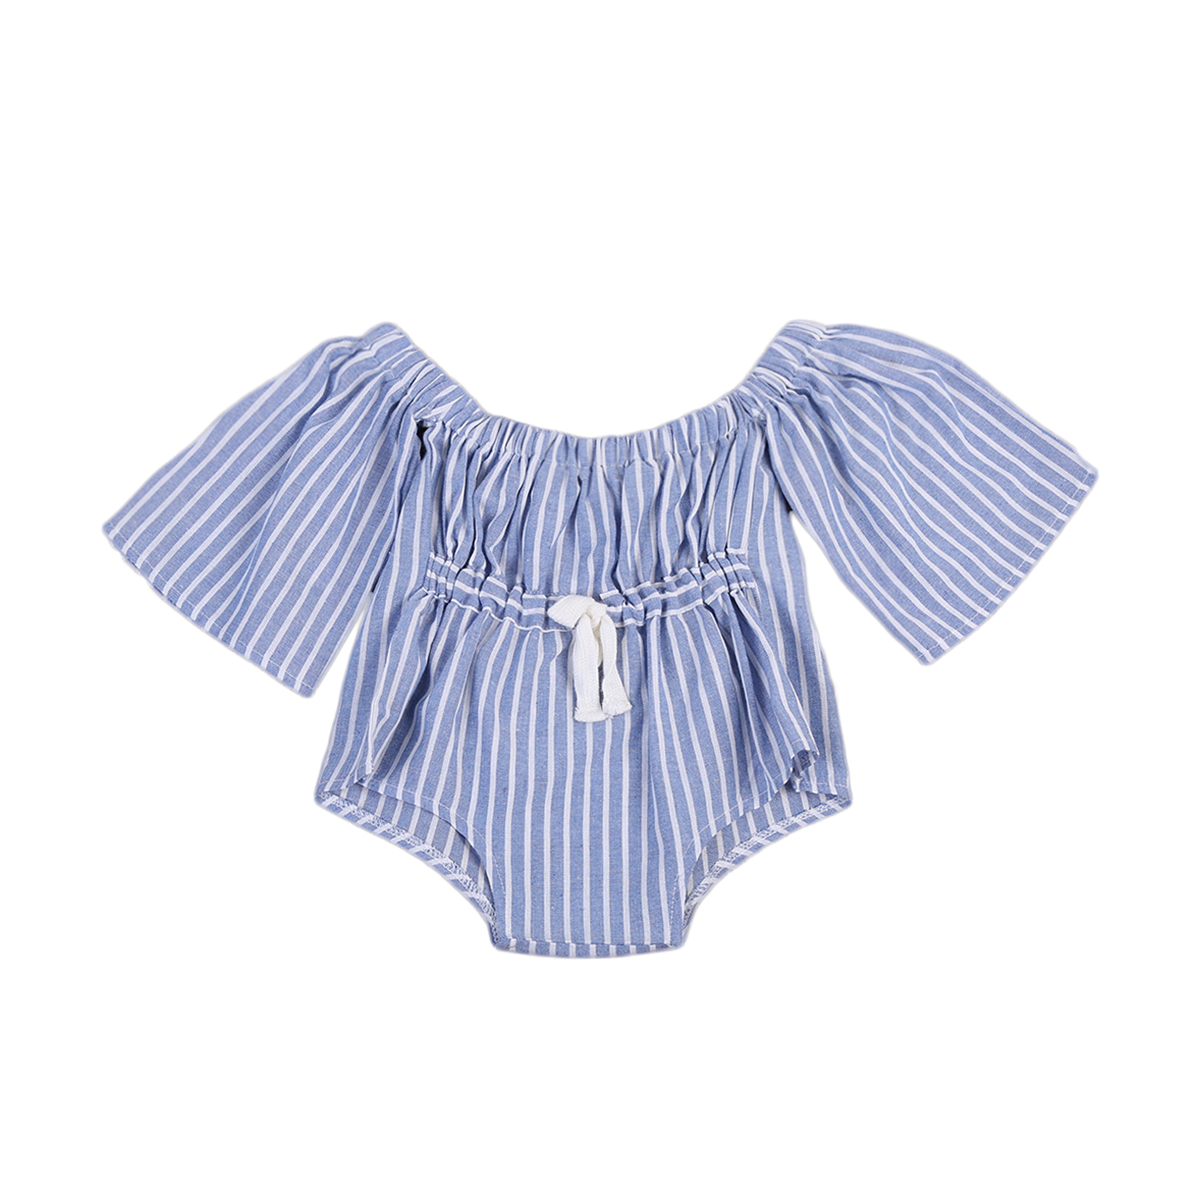 2017 Summer Toddler Kids Girls Striped Baby Romper Off shoulder Flare Sleeve Cotton Clothes Jumpsuit Outfits Sunsuit 0-4T 4pcs 1 9 rubber tires